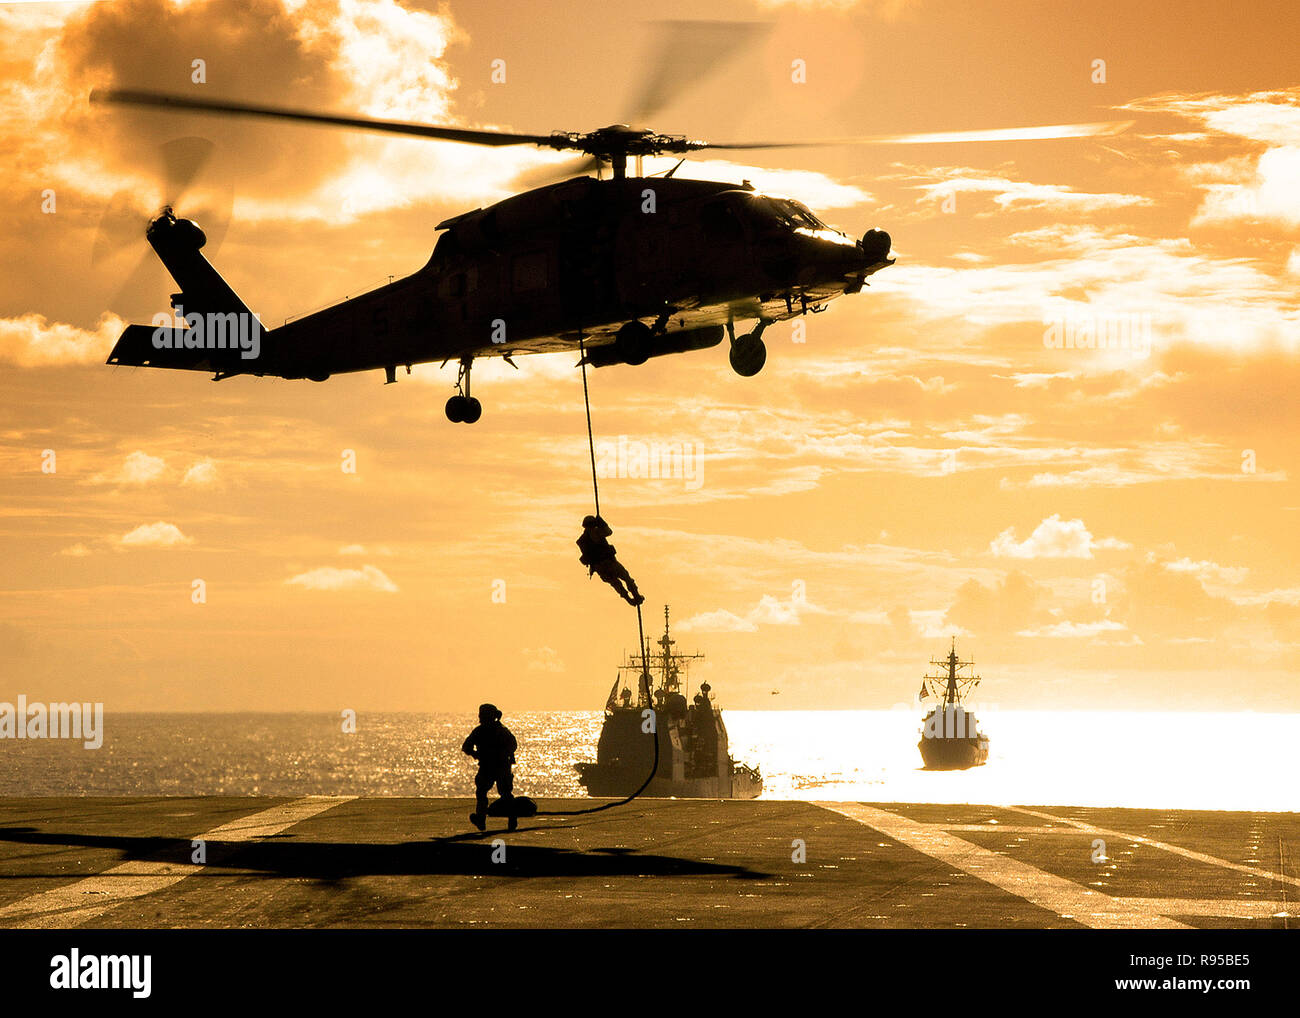 Detachment 9 fast ropes from an SH-60 Seahawk helicopter